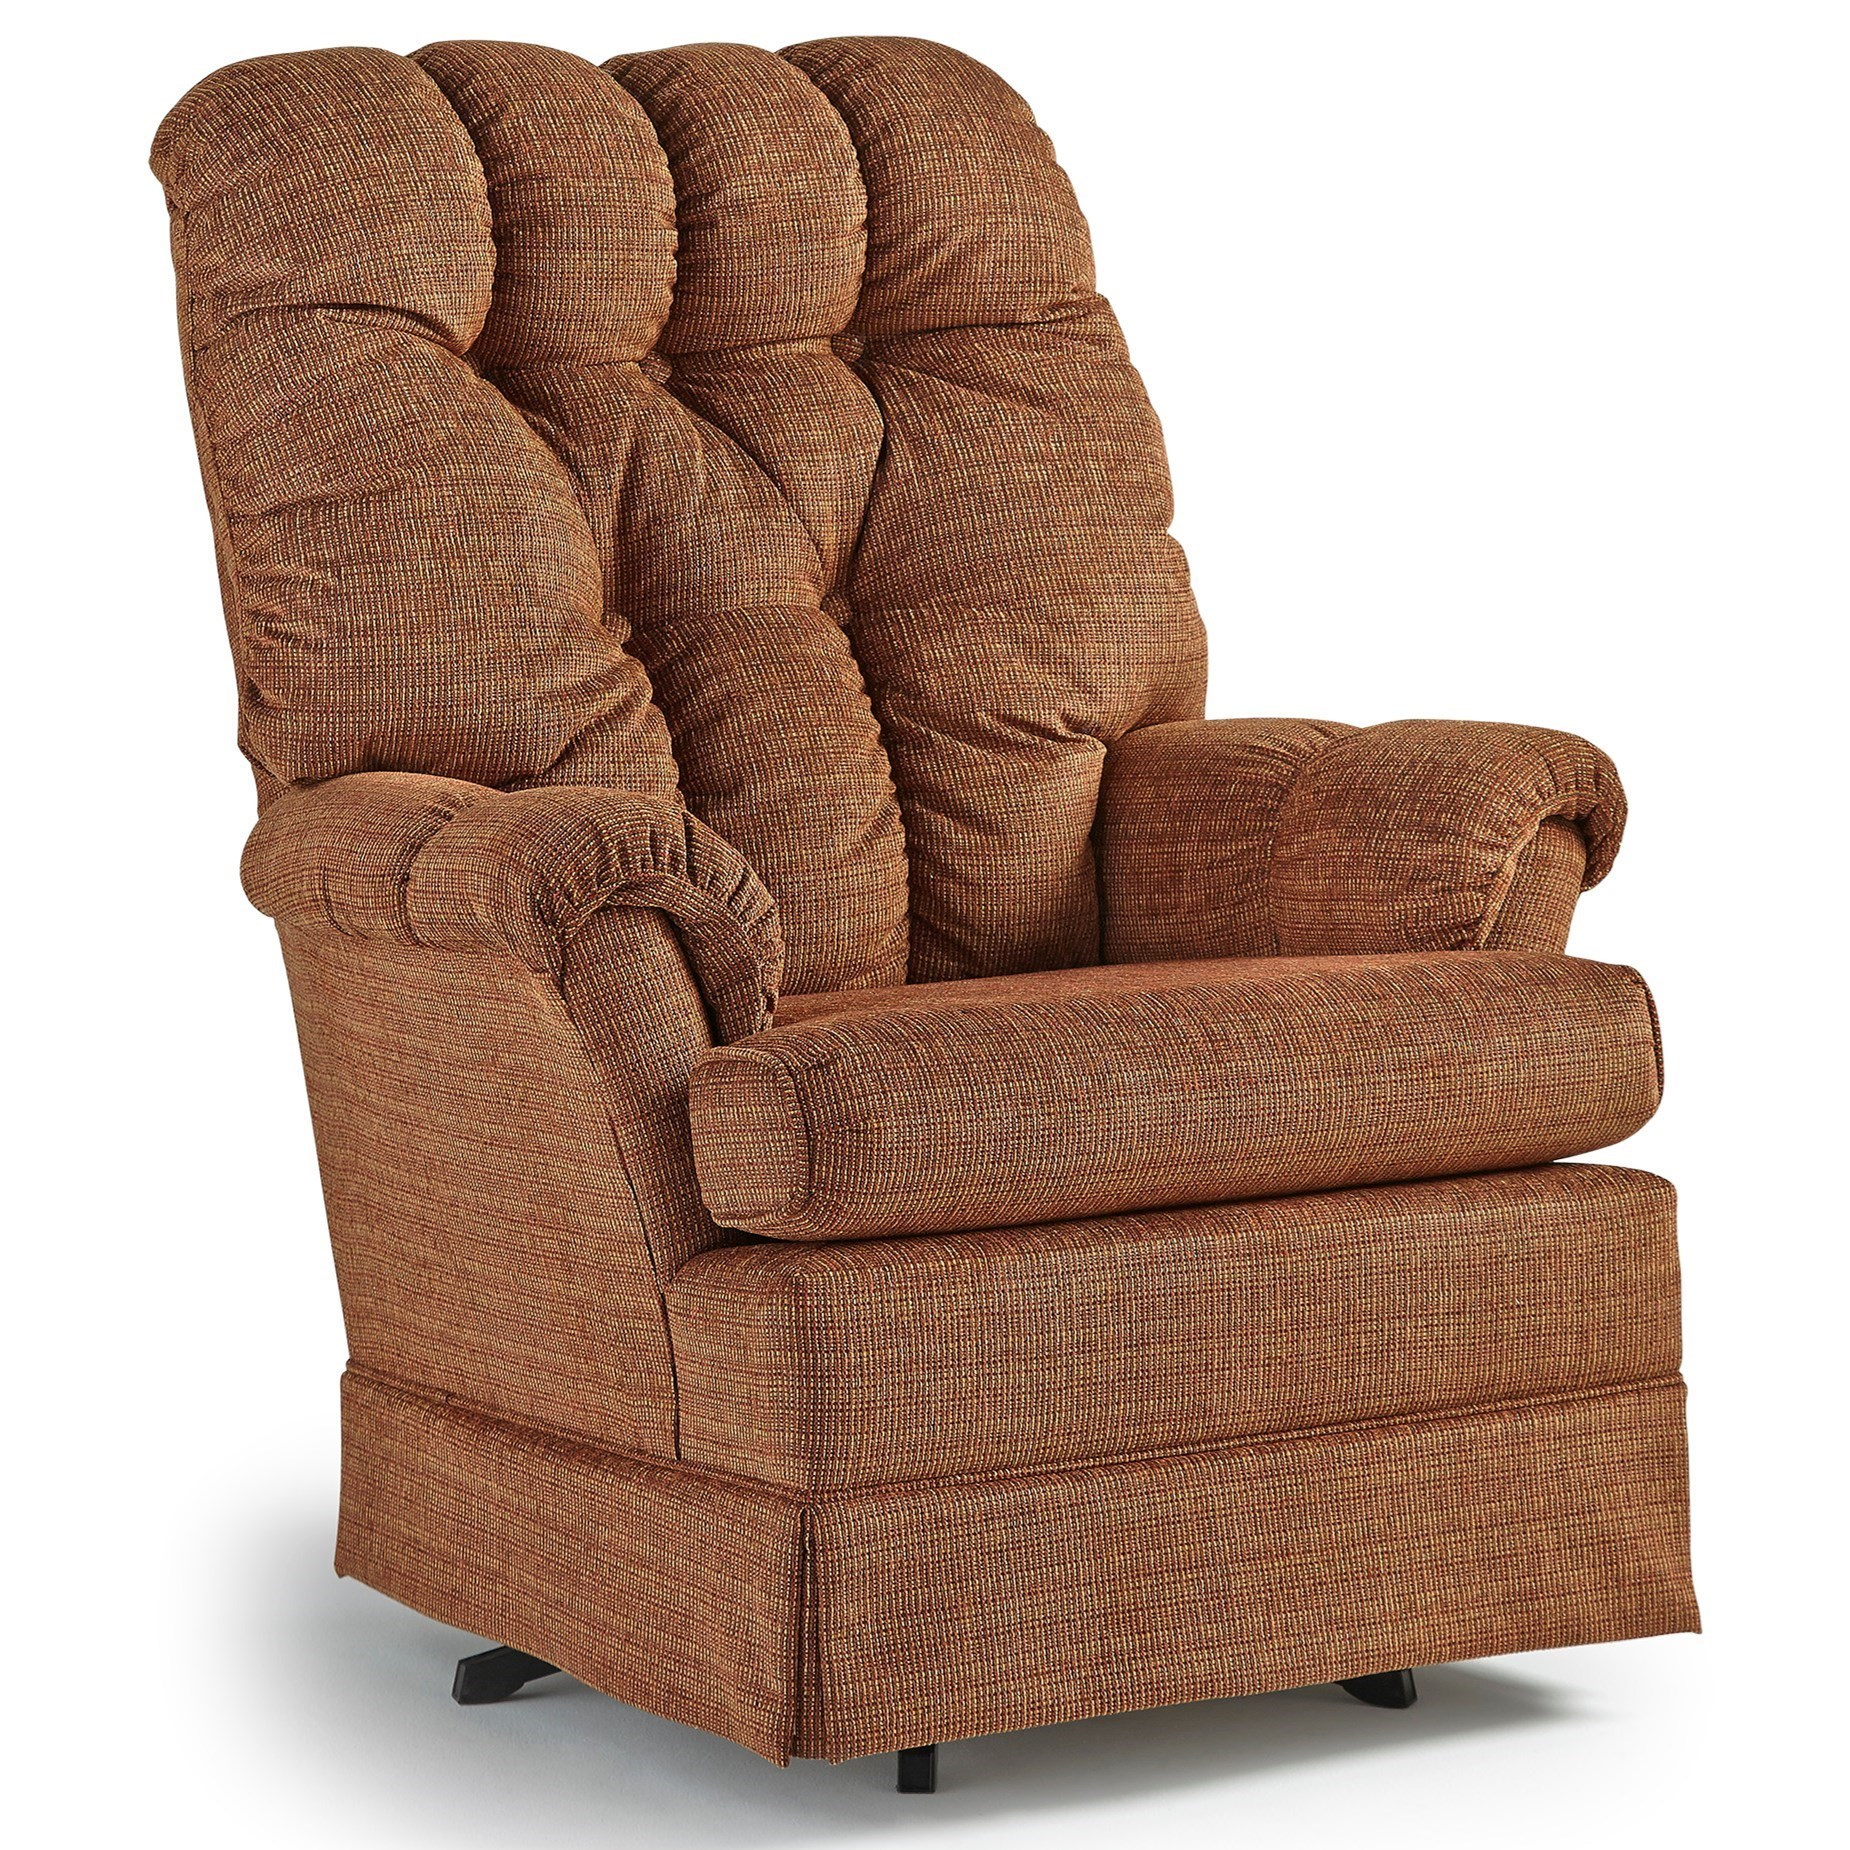 Best Home Furnishings Chairs   Swivel Glide Biscay Swivel Glider Chair